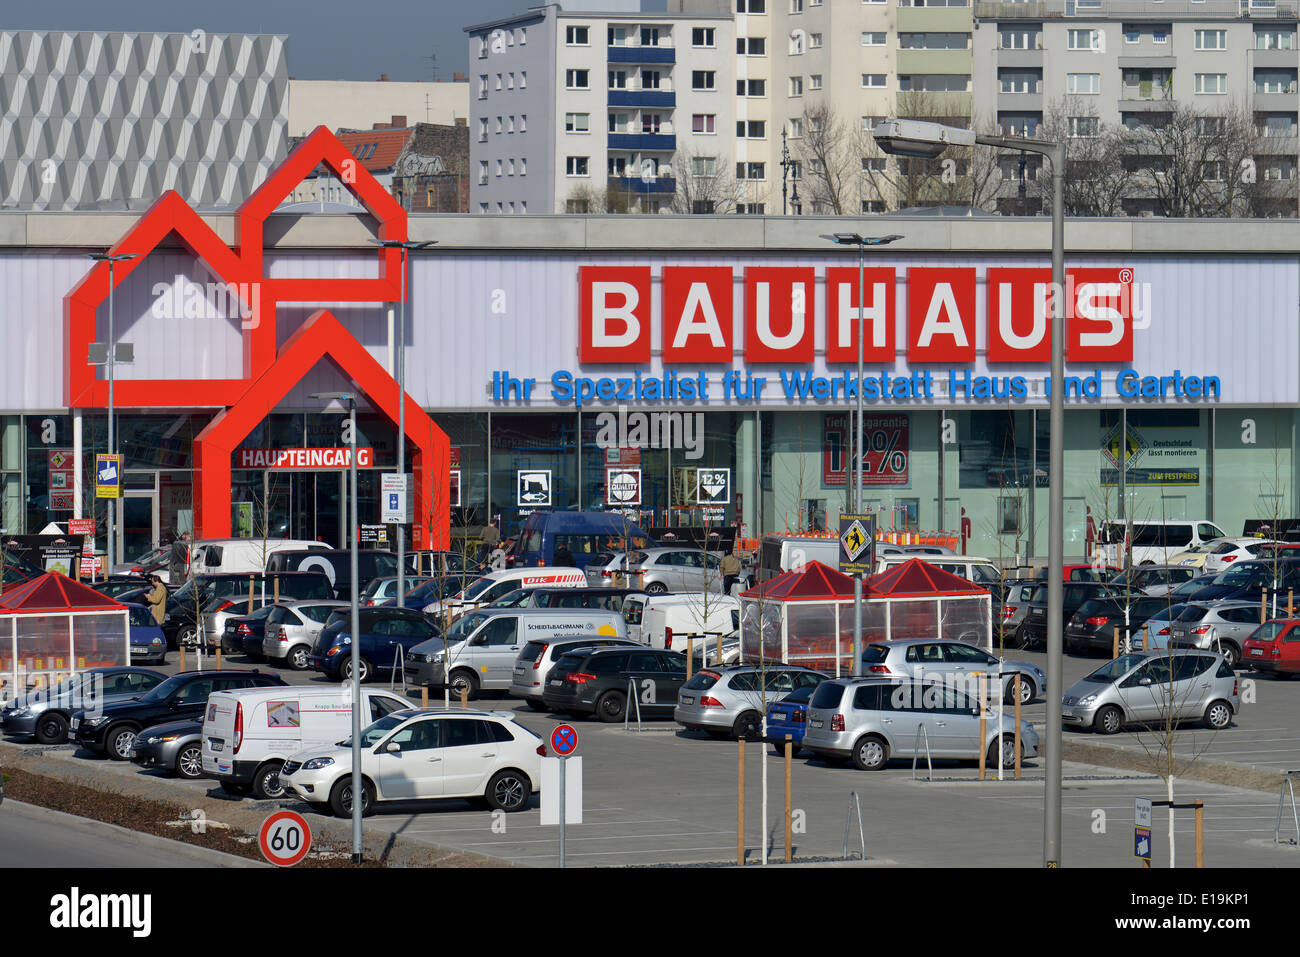 bauhaus logo stockfotos bauhaus logo bilder alamy. Black Bedroom Furniture Sets. Home Design Ideas